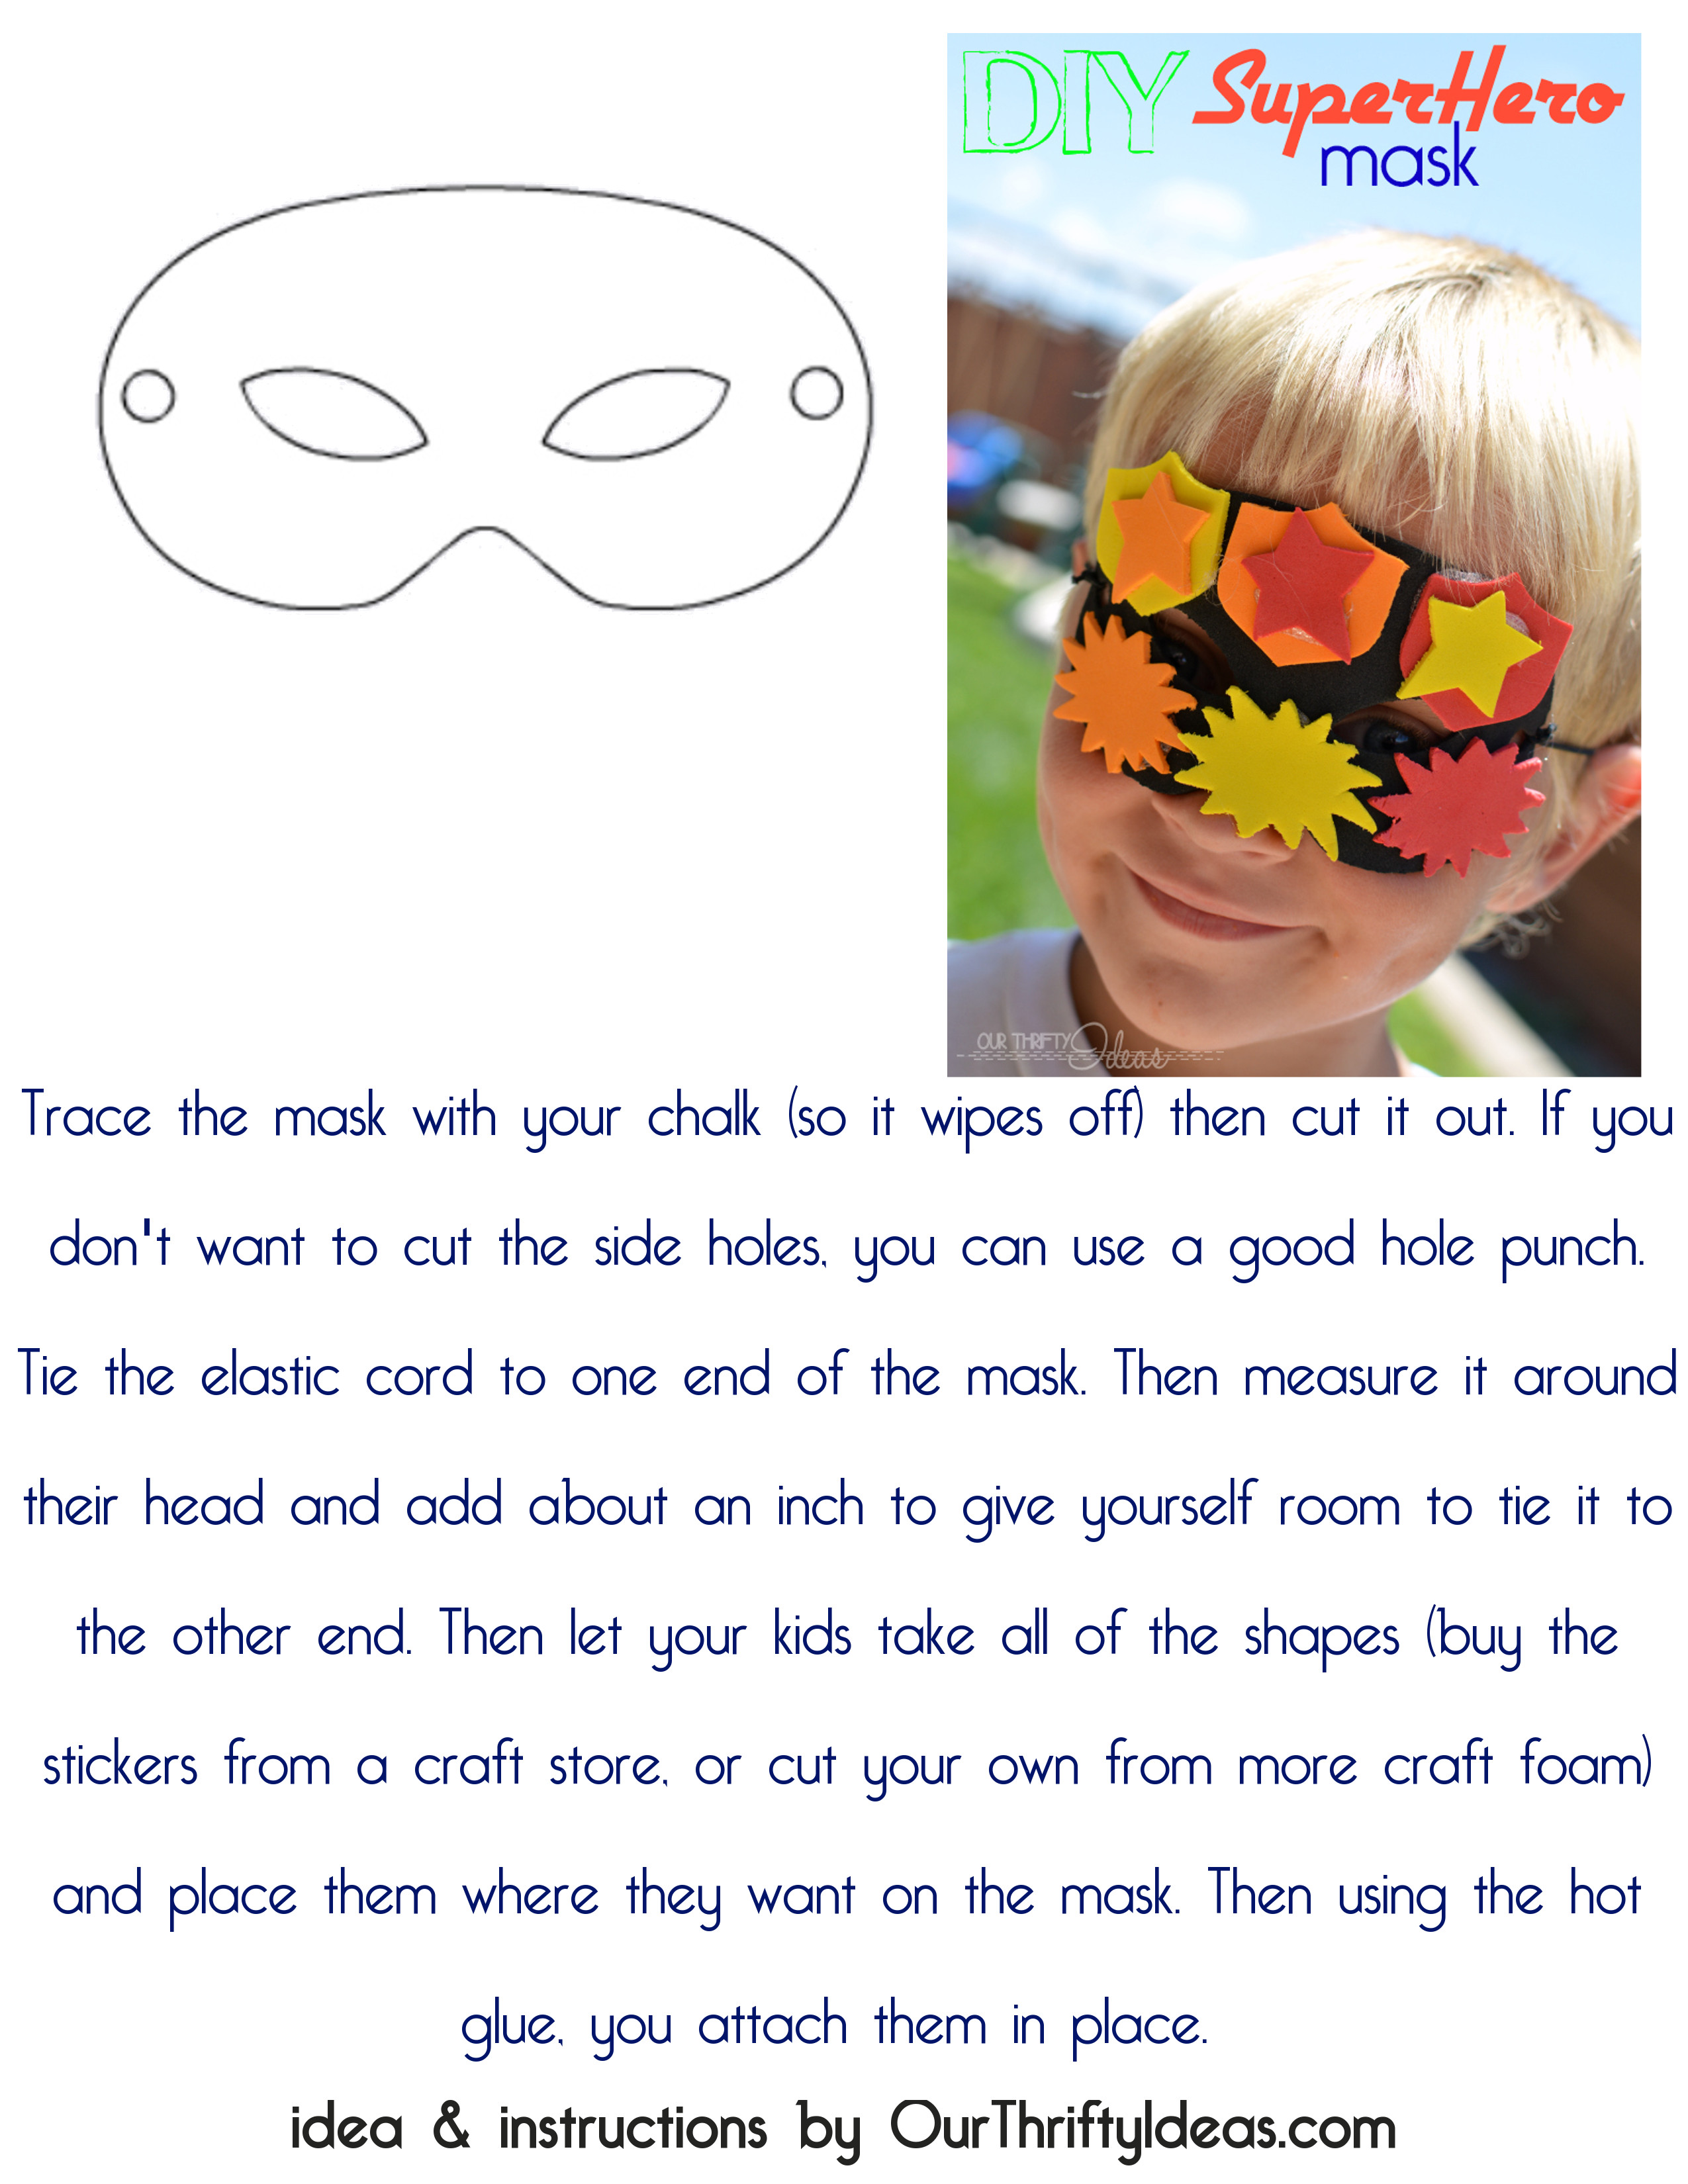 Diy super hero mask skip to my lou just download this page with a mask template maxwellsz